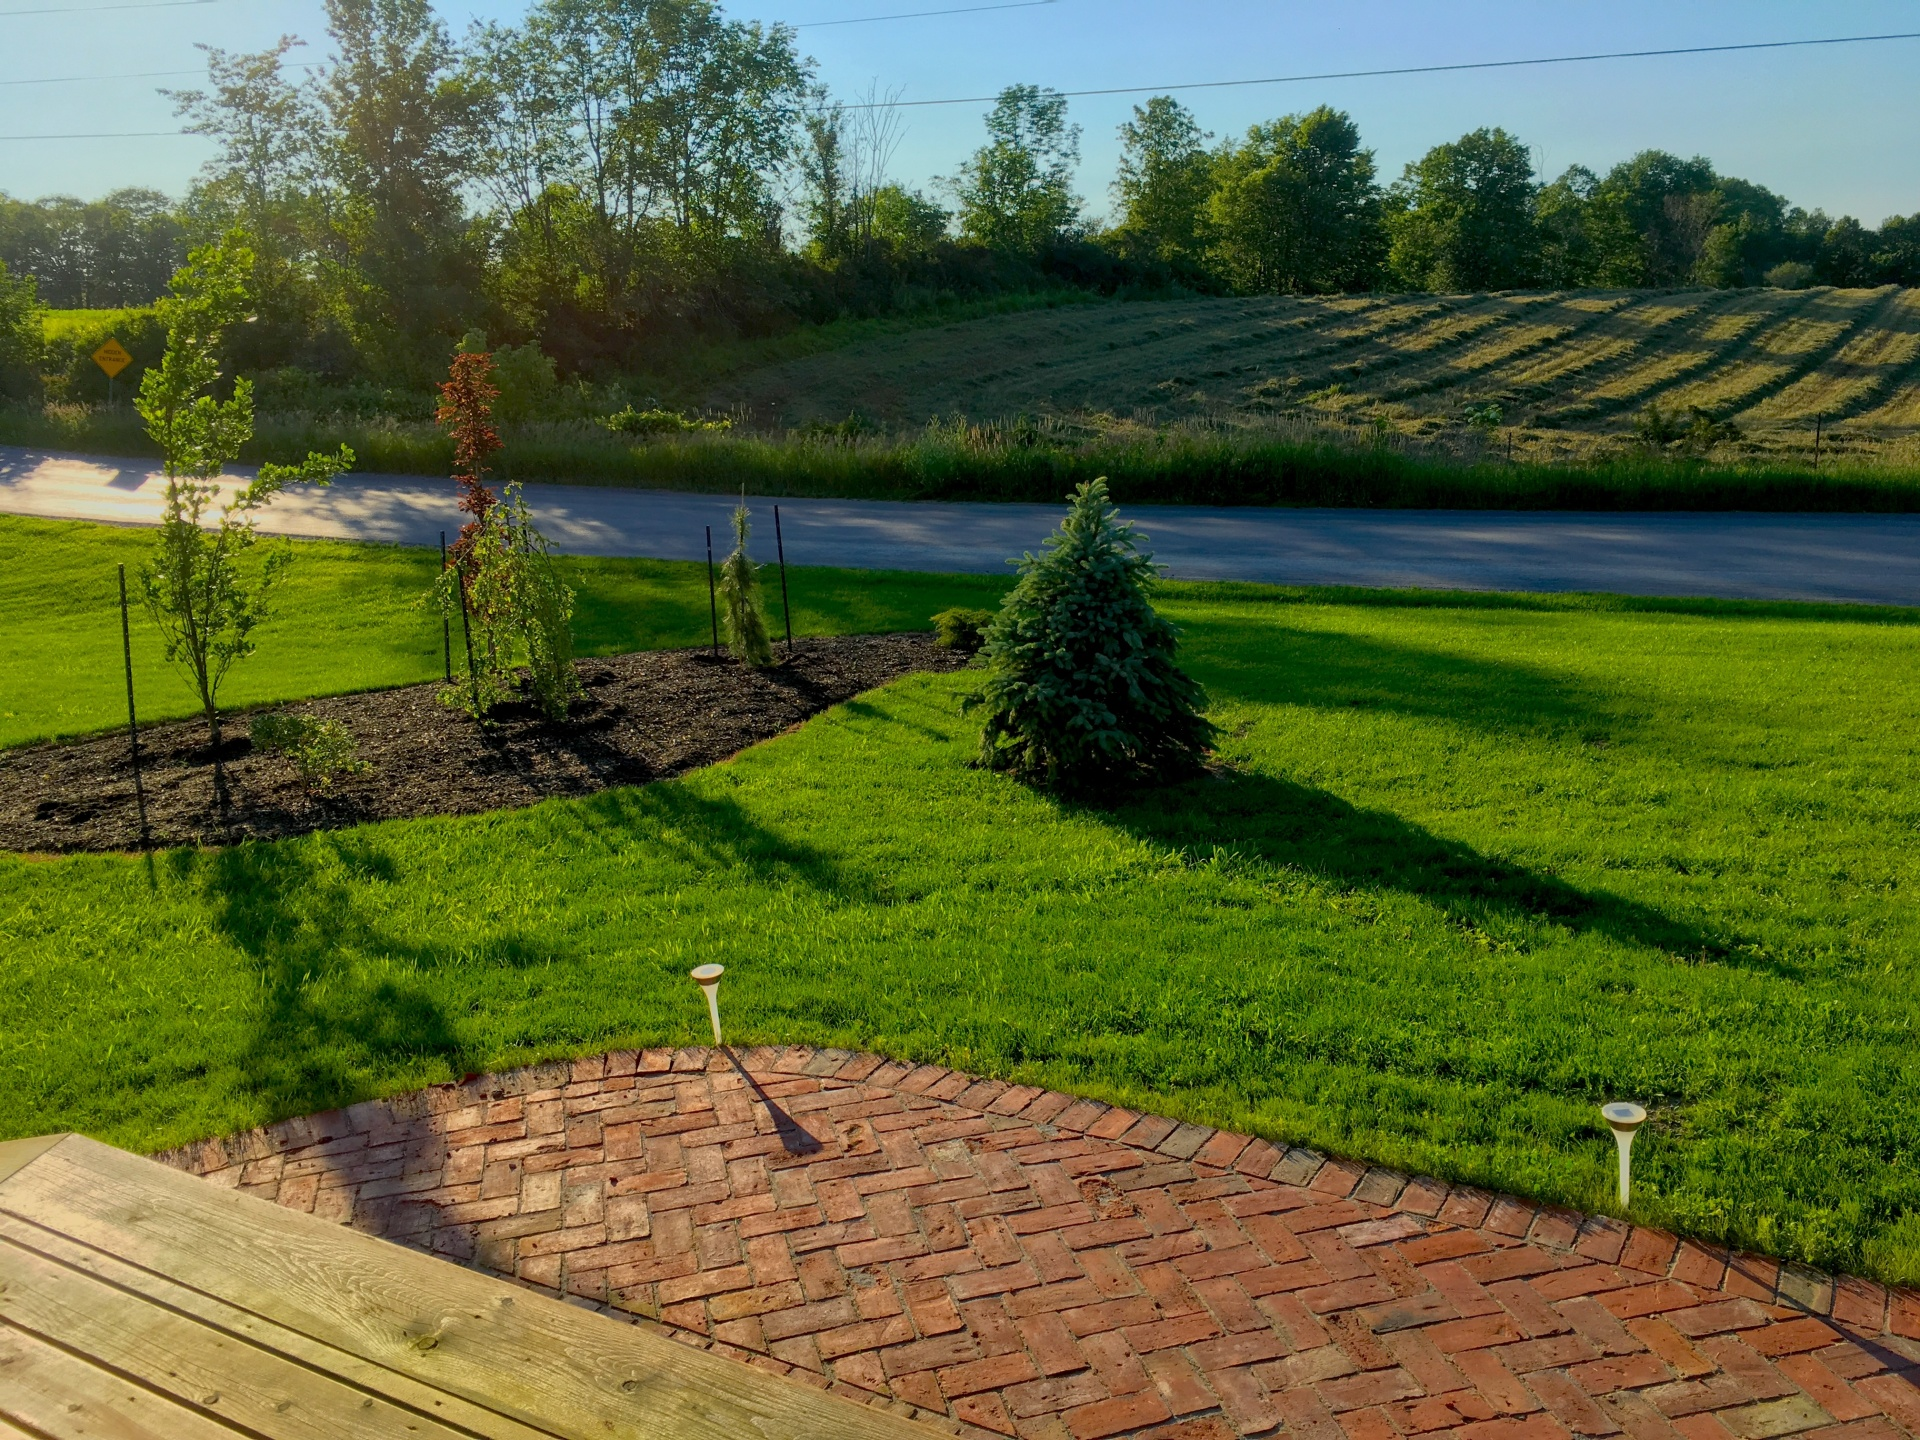 Red brick herringbone pattern entryway with new tree plantings and lawn